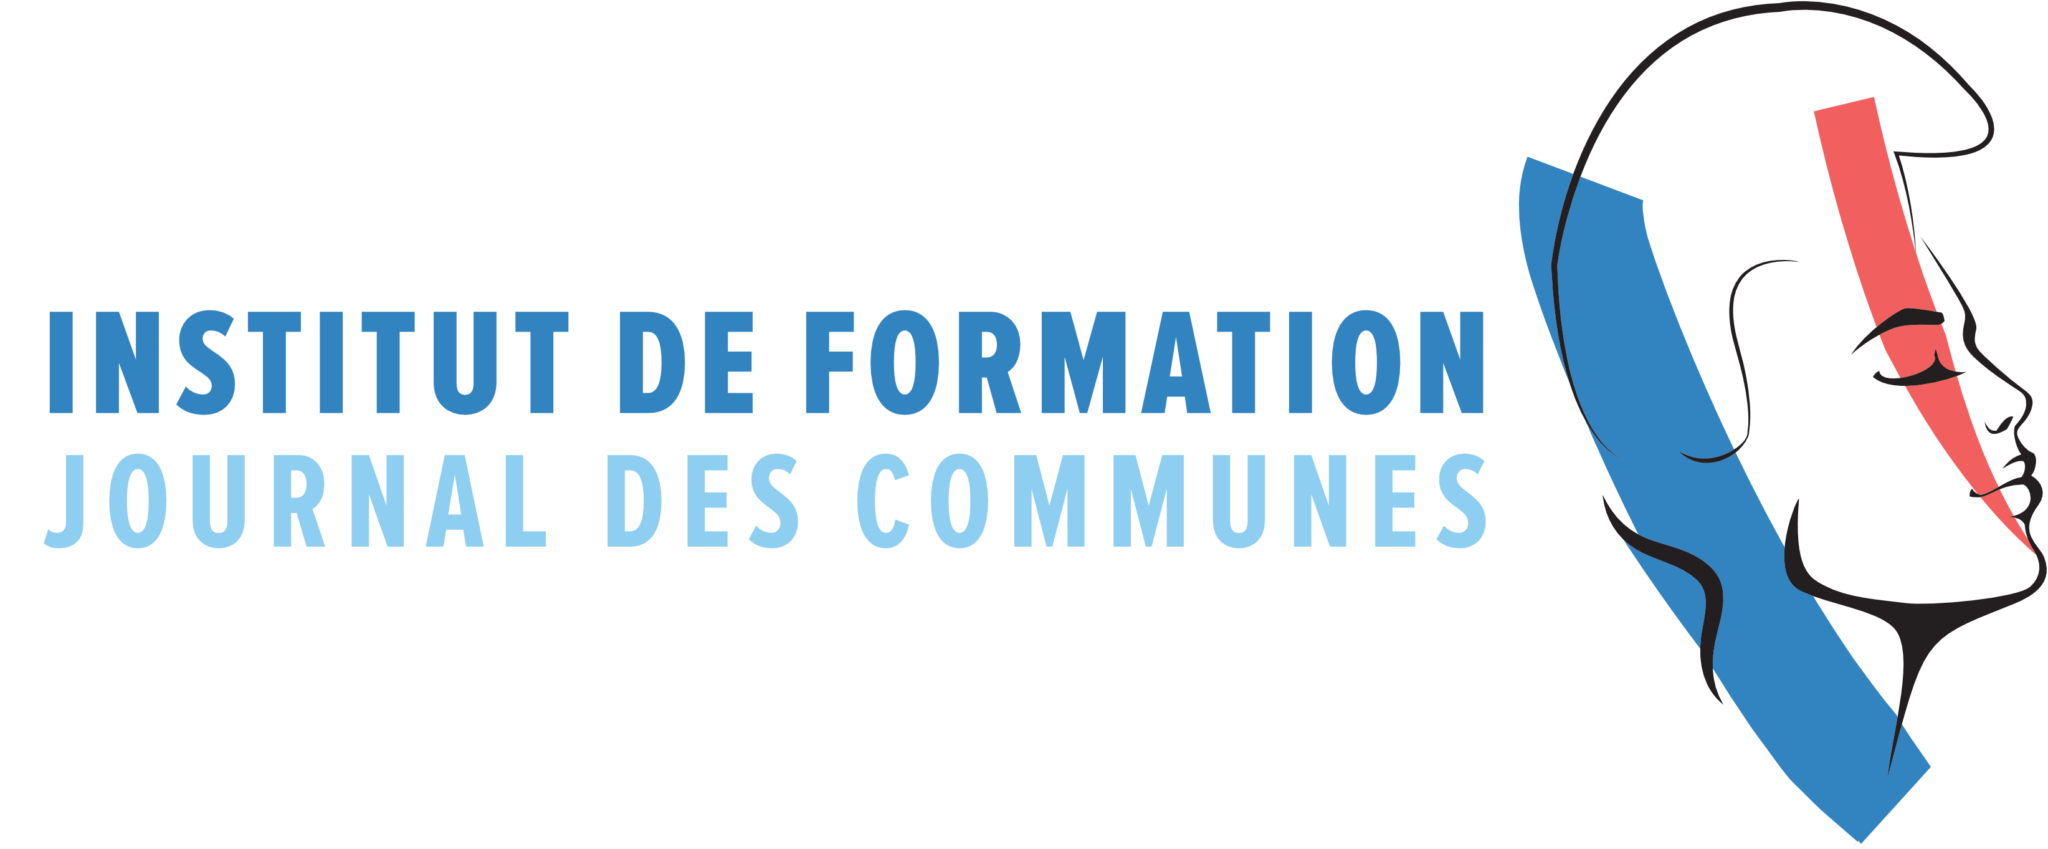 Institut de Formation du Journal Des Communes